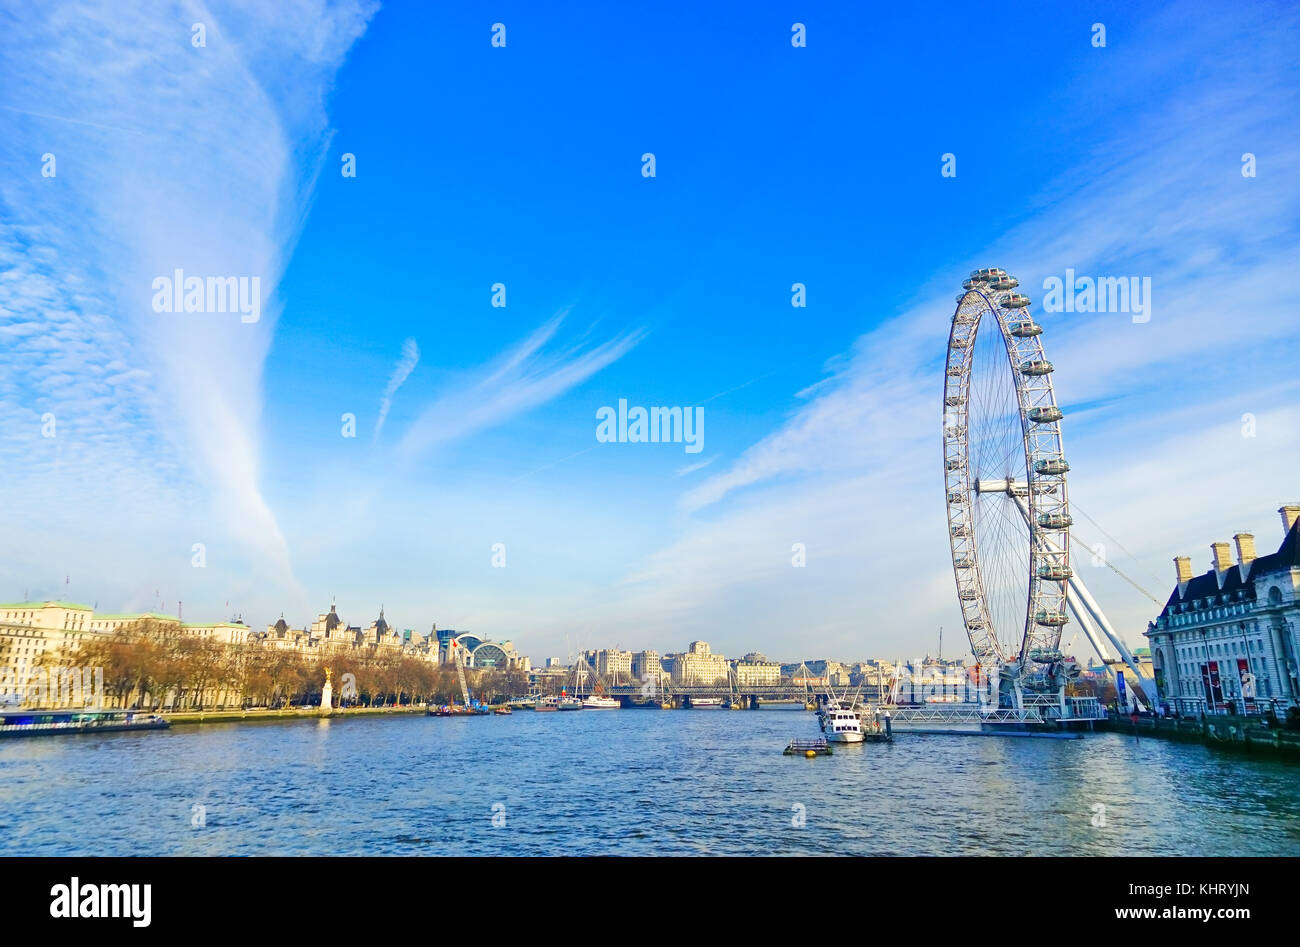 View of the River Thames with London Eye in a sunny day Stock Photo